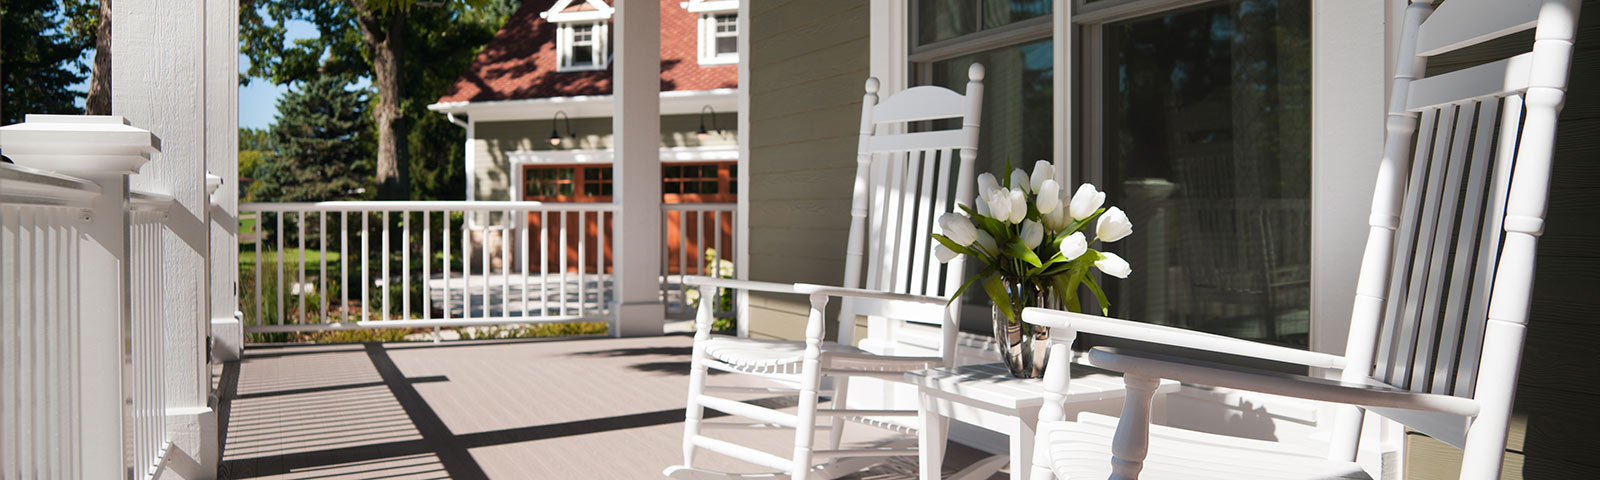 Chairs on porch